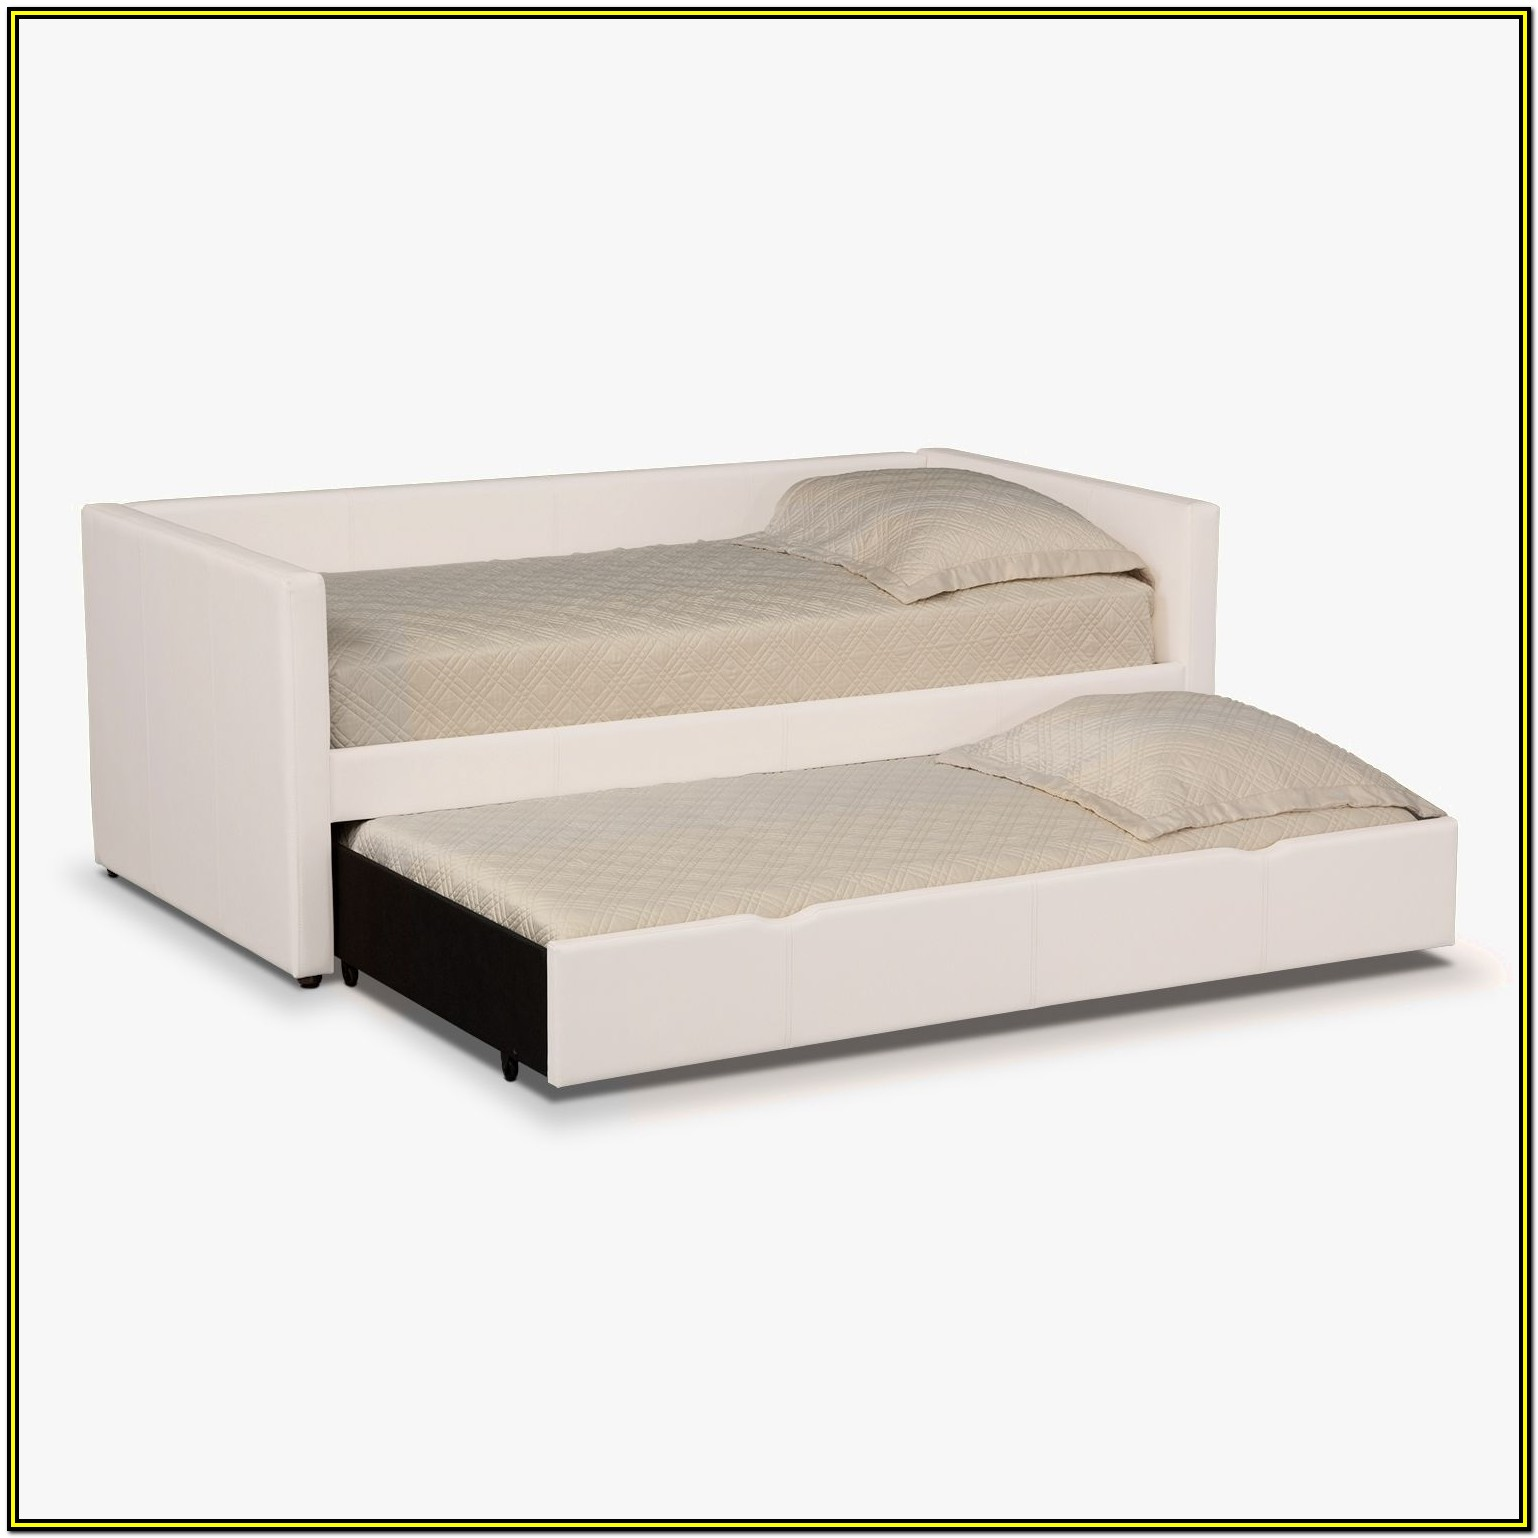 Ikea Daybed With Trundle And Drawers